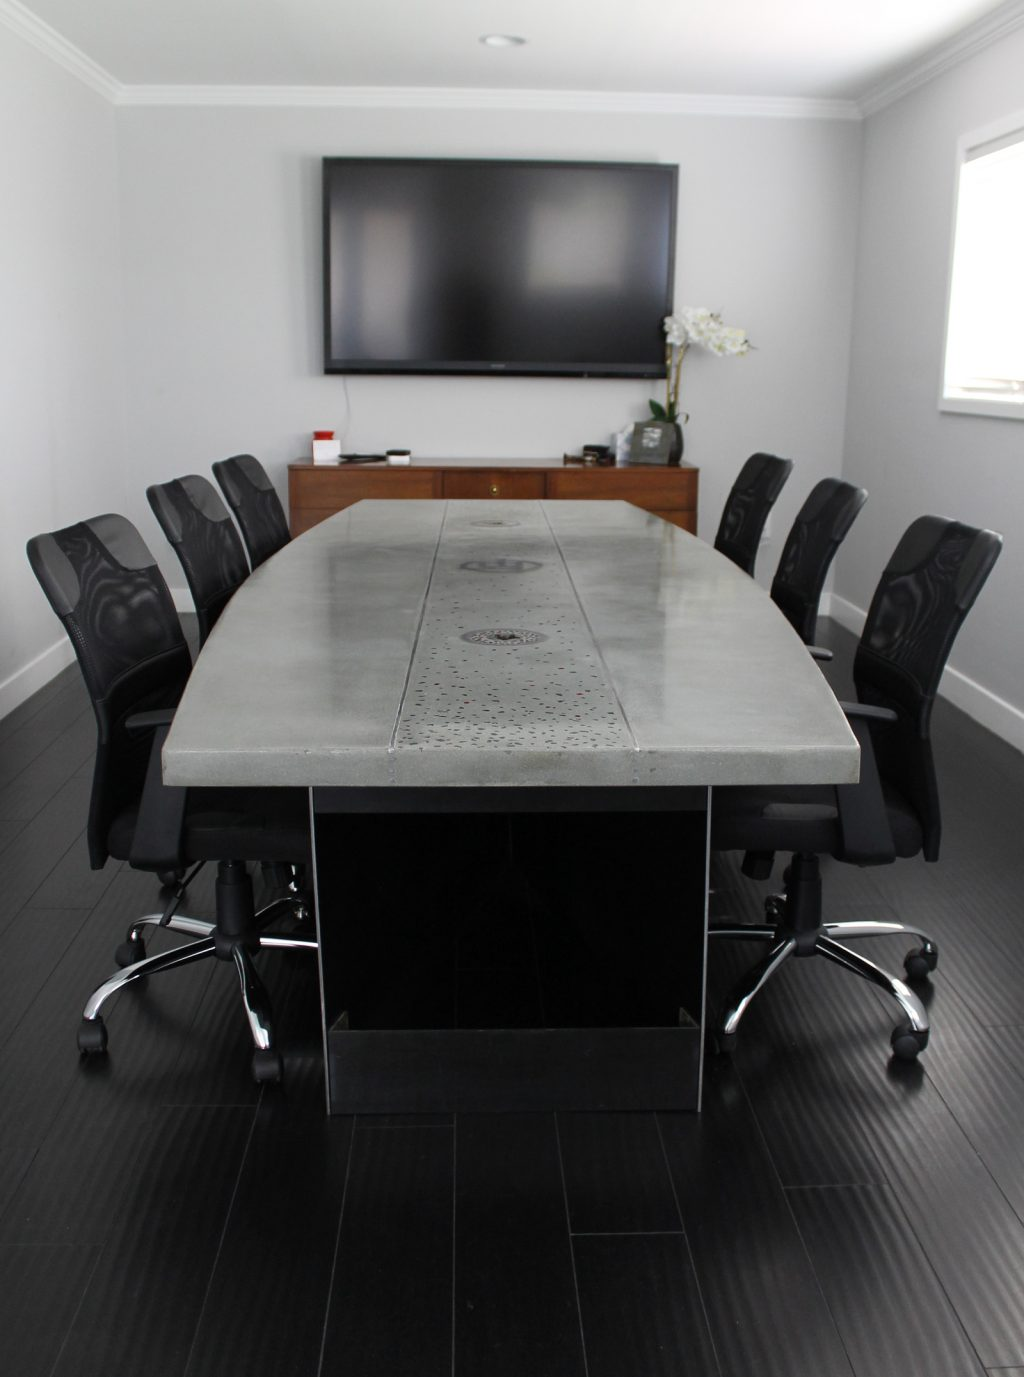 CONFERENCE TABLE Sano Studio - Gray conference table